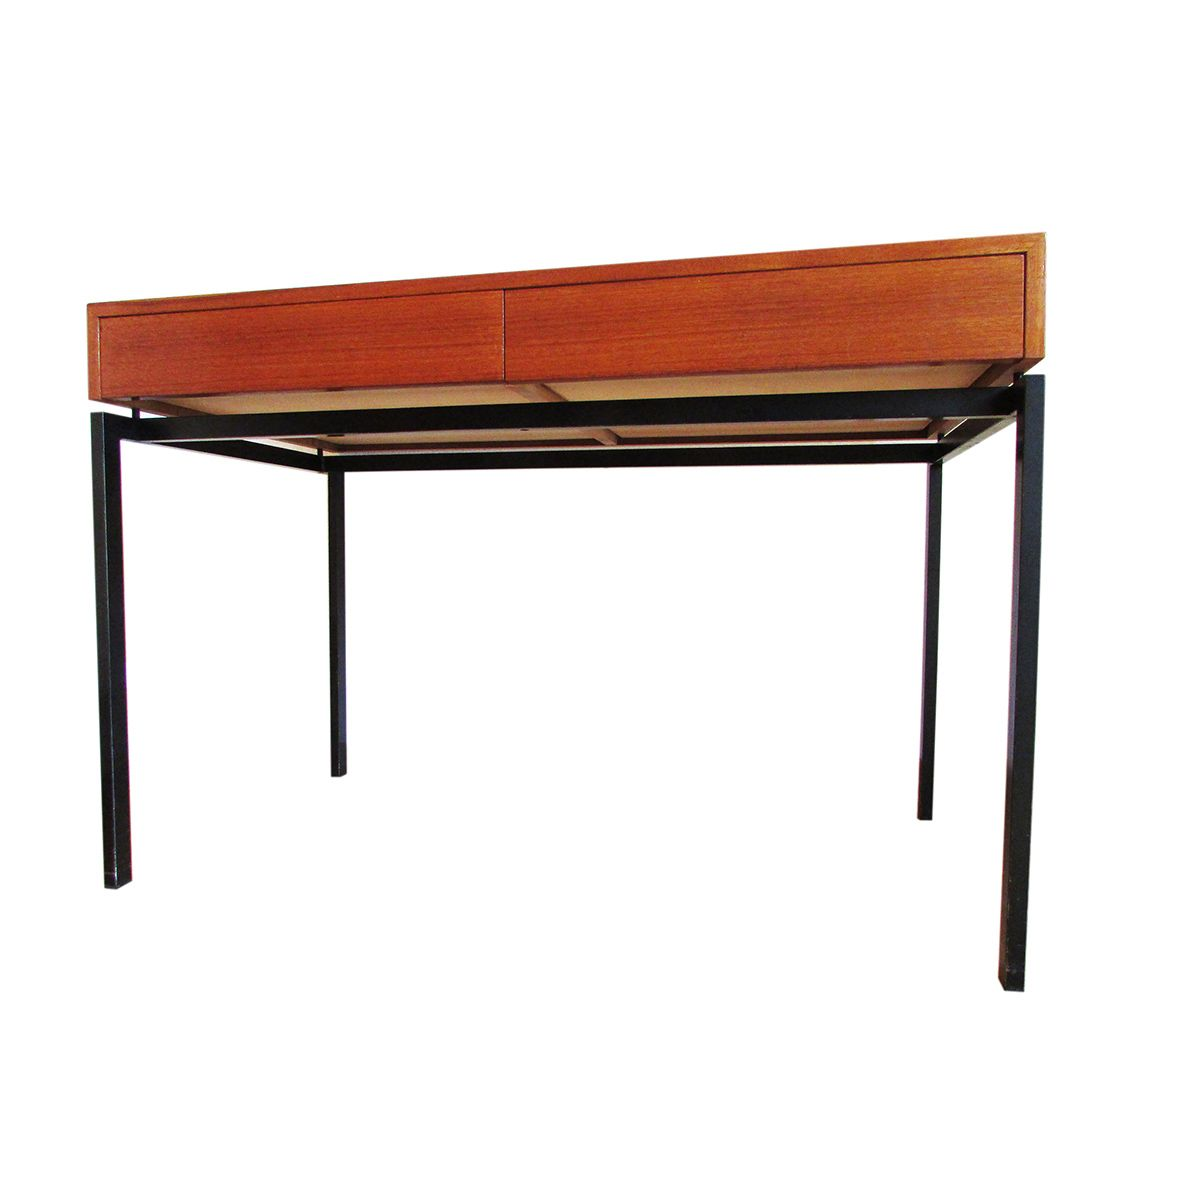 Swiss minimalist teak desk from zingg lamprecht for sale for Minimalist desk